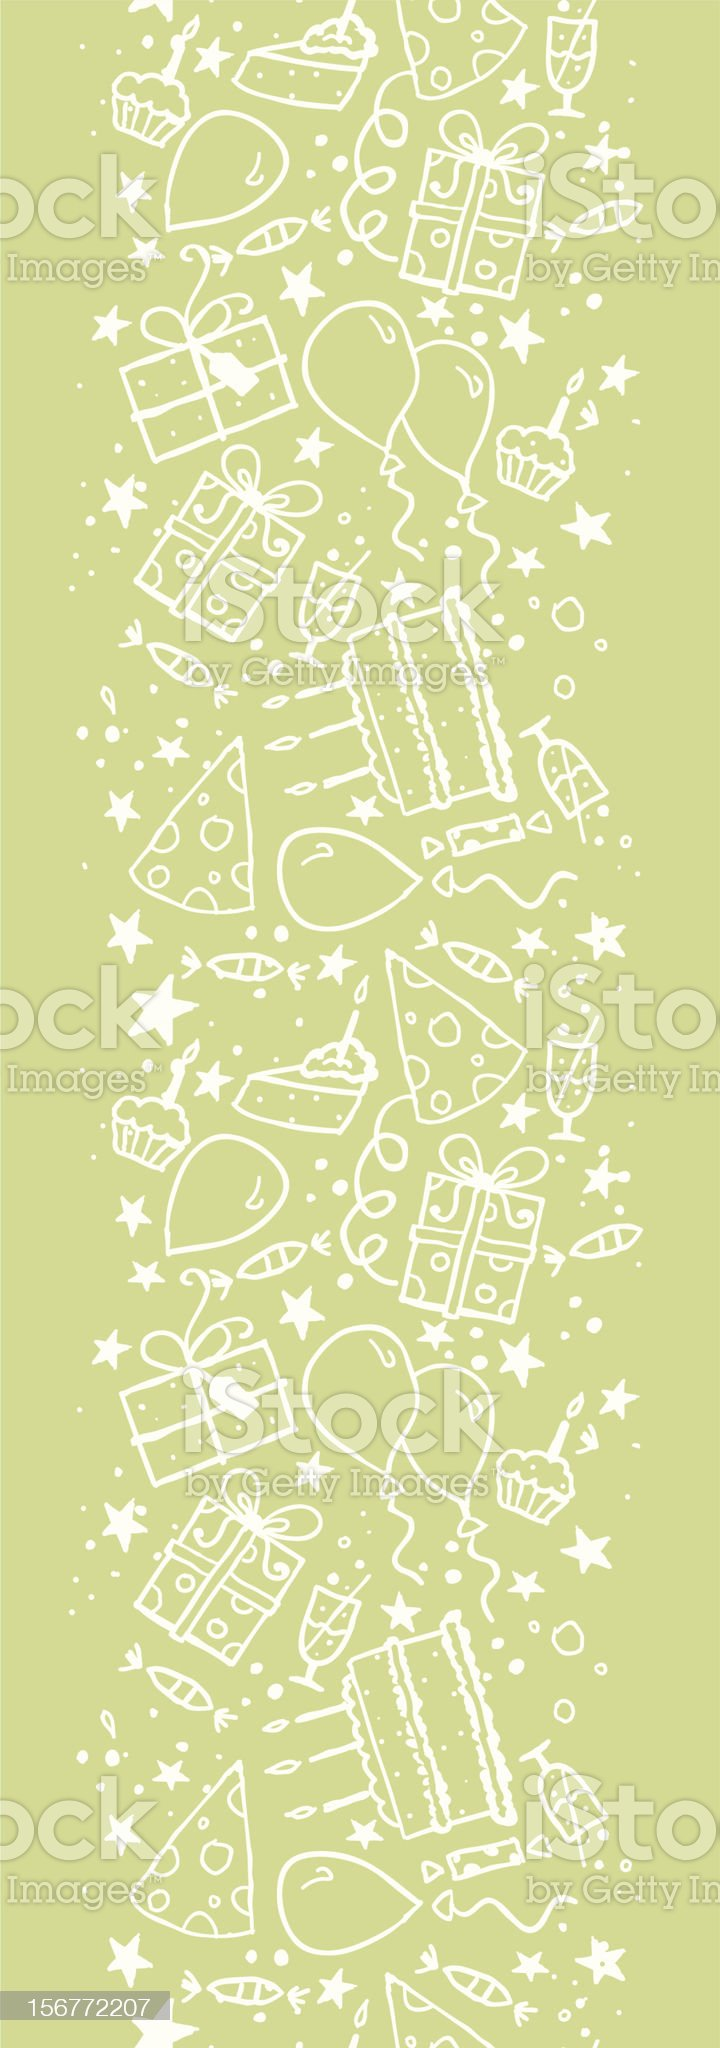 Birthday Party Vertical Seamless Pattern Ornament royalty-free stock vector art